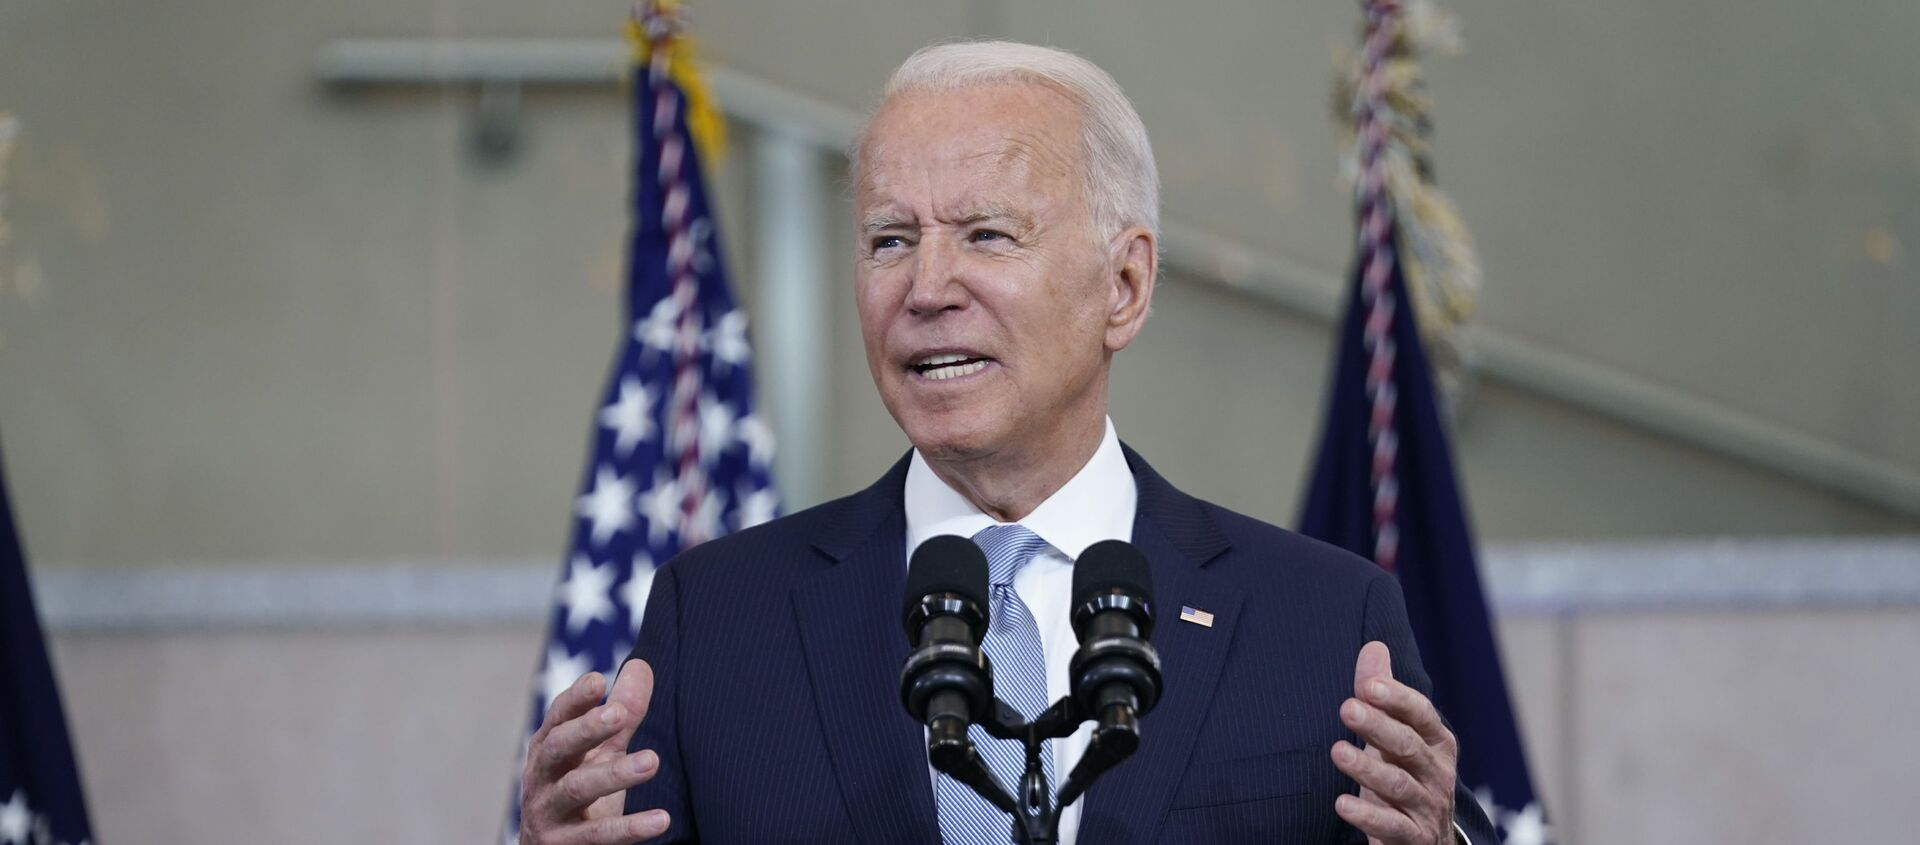 President Joe Biden delivers a speech on voting rights at the National Constitution Center, Tuesday, July 13, 2021, in Philadelphia. - Sputnik 日本, 1920, 12.08.2021